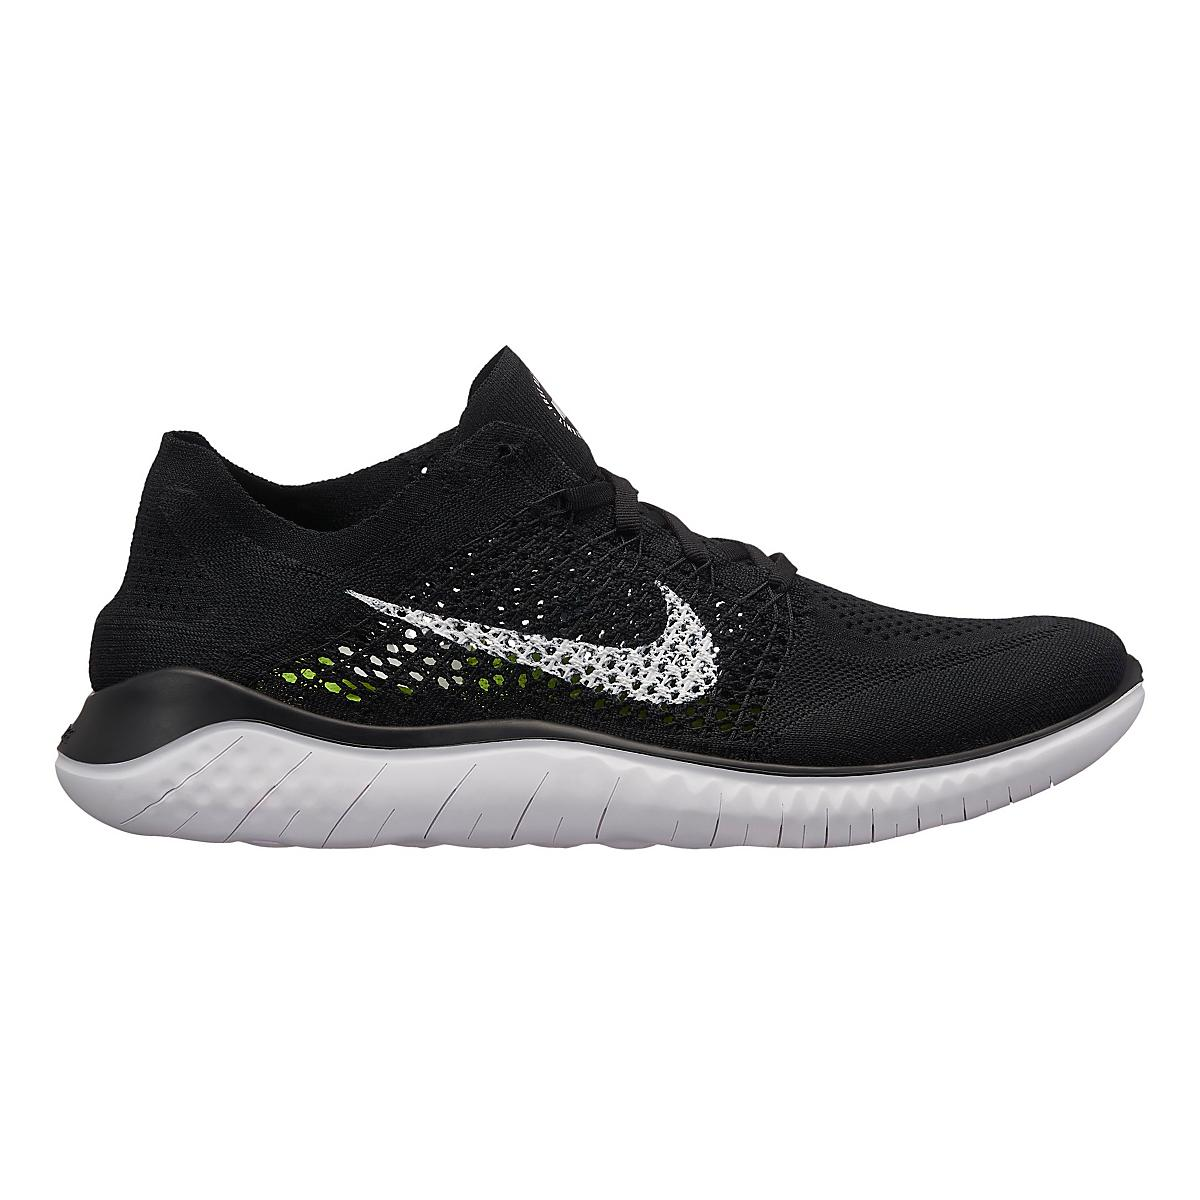 best website 48647 4ace2 Men s Nike Free RN Flyknit 2018. Running Shoes